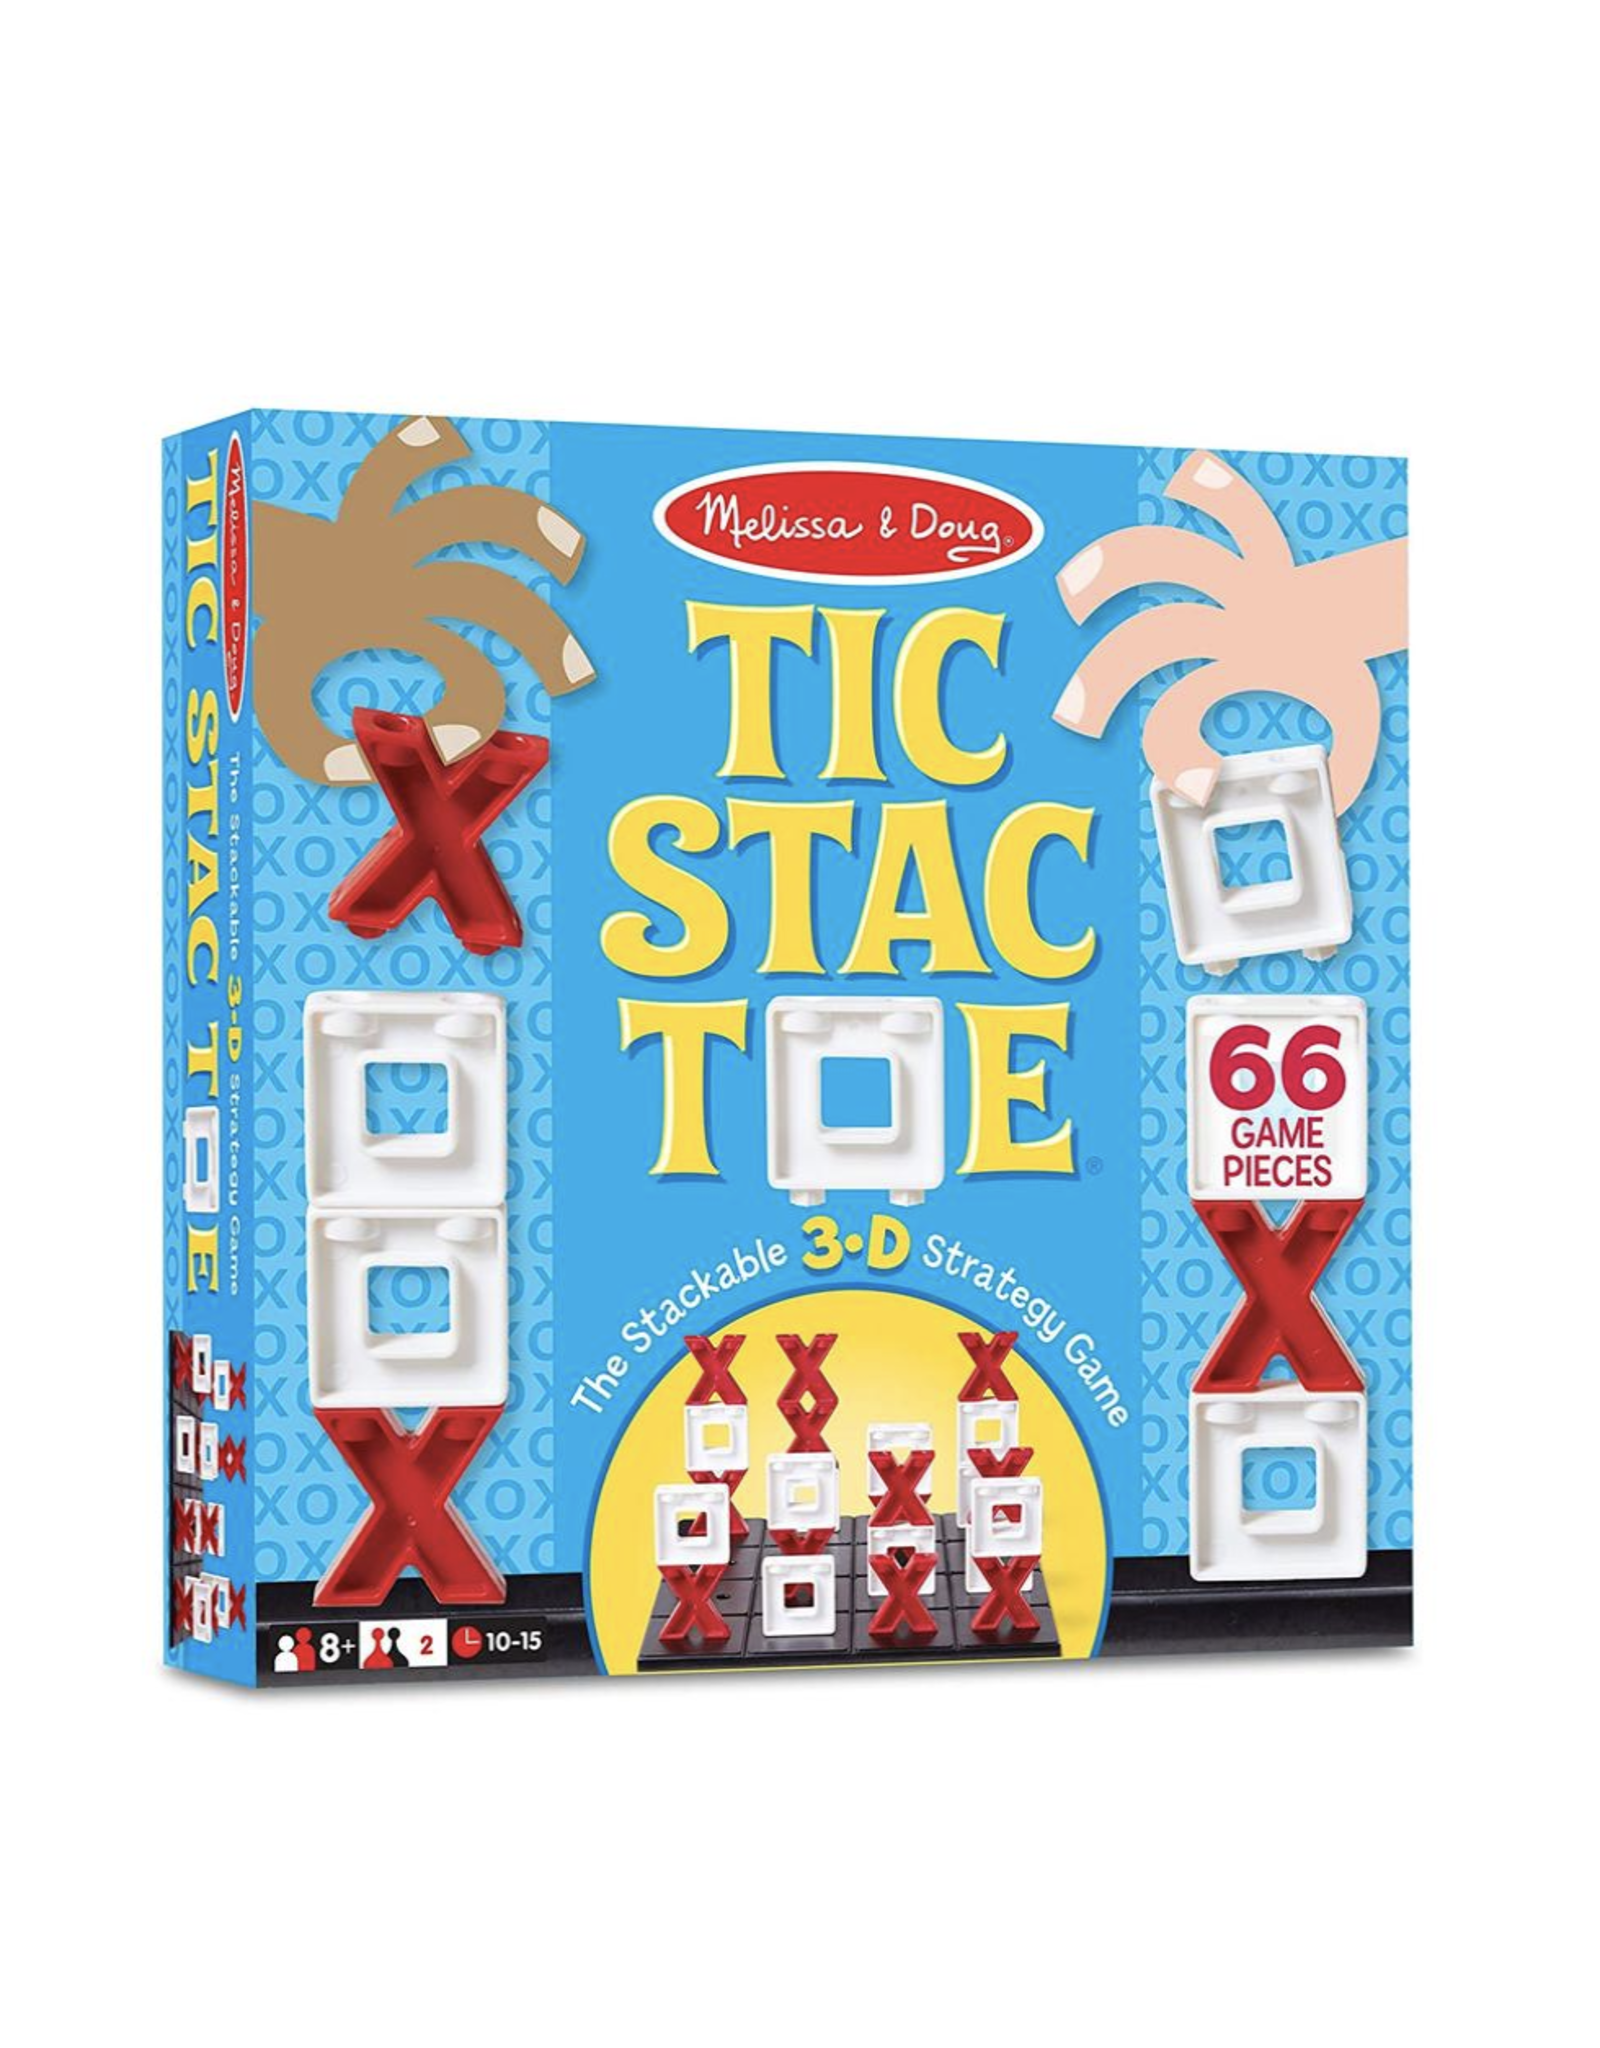 melissa and doug Tic Tac Toe 3D